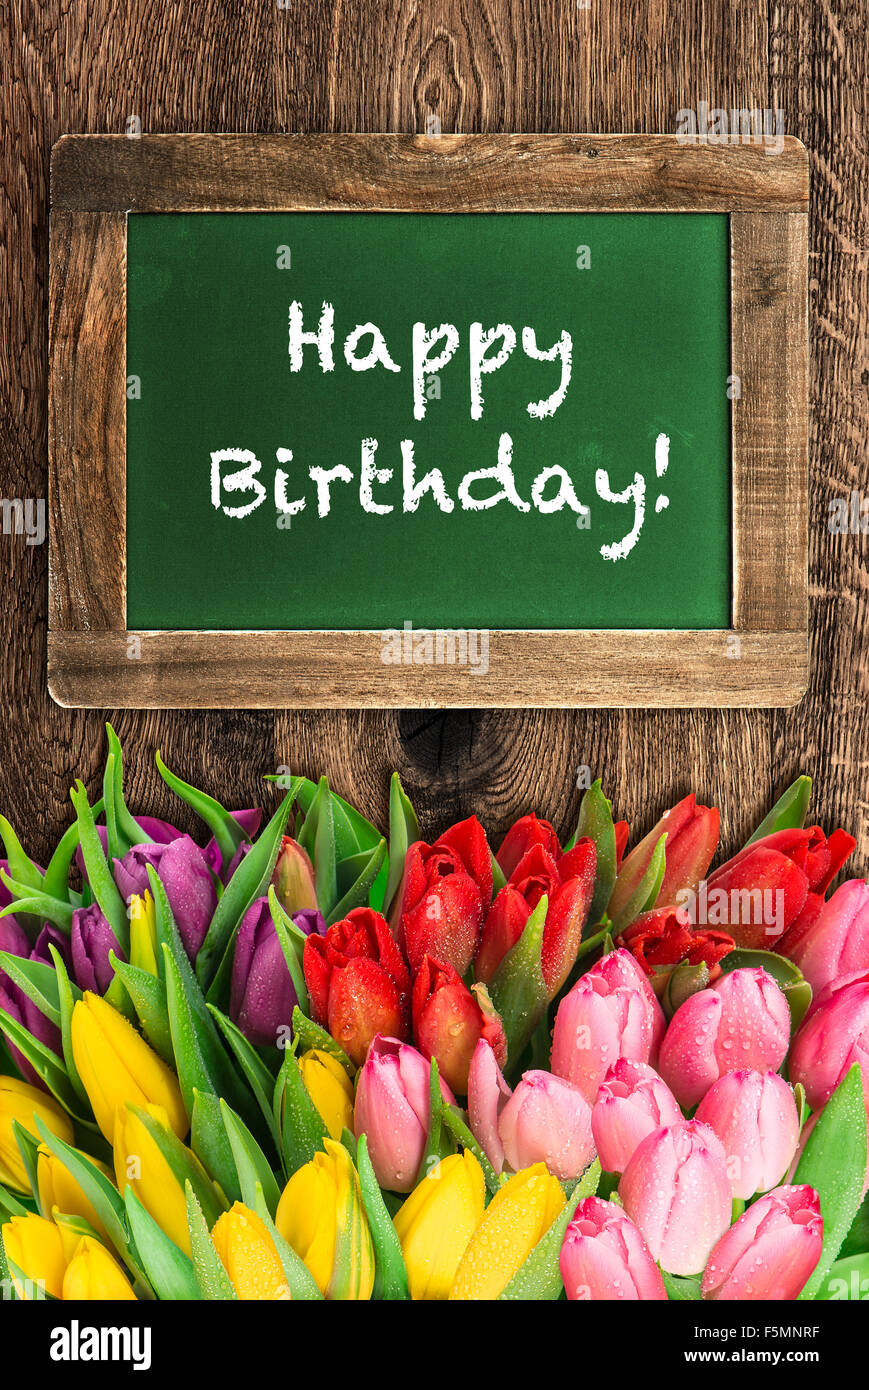 Tulip Flowers And Vintage Green Chalkboard Sample Text Happy Birthday